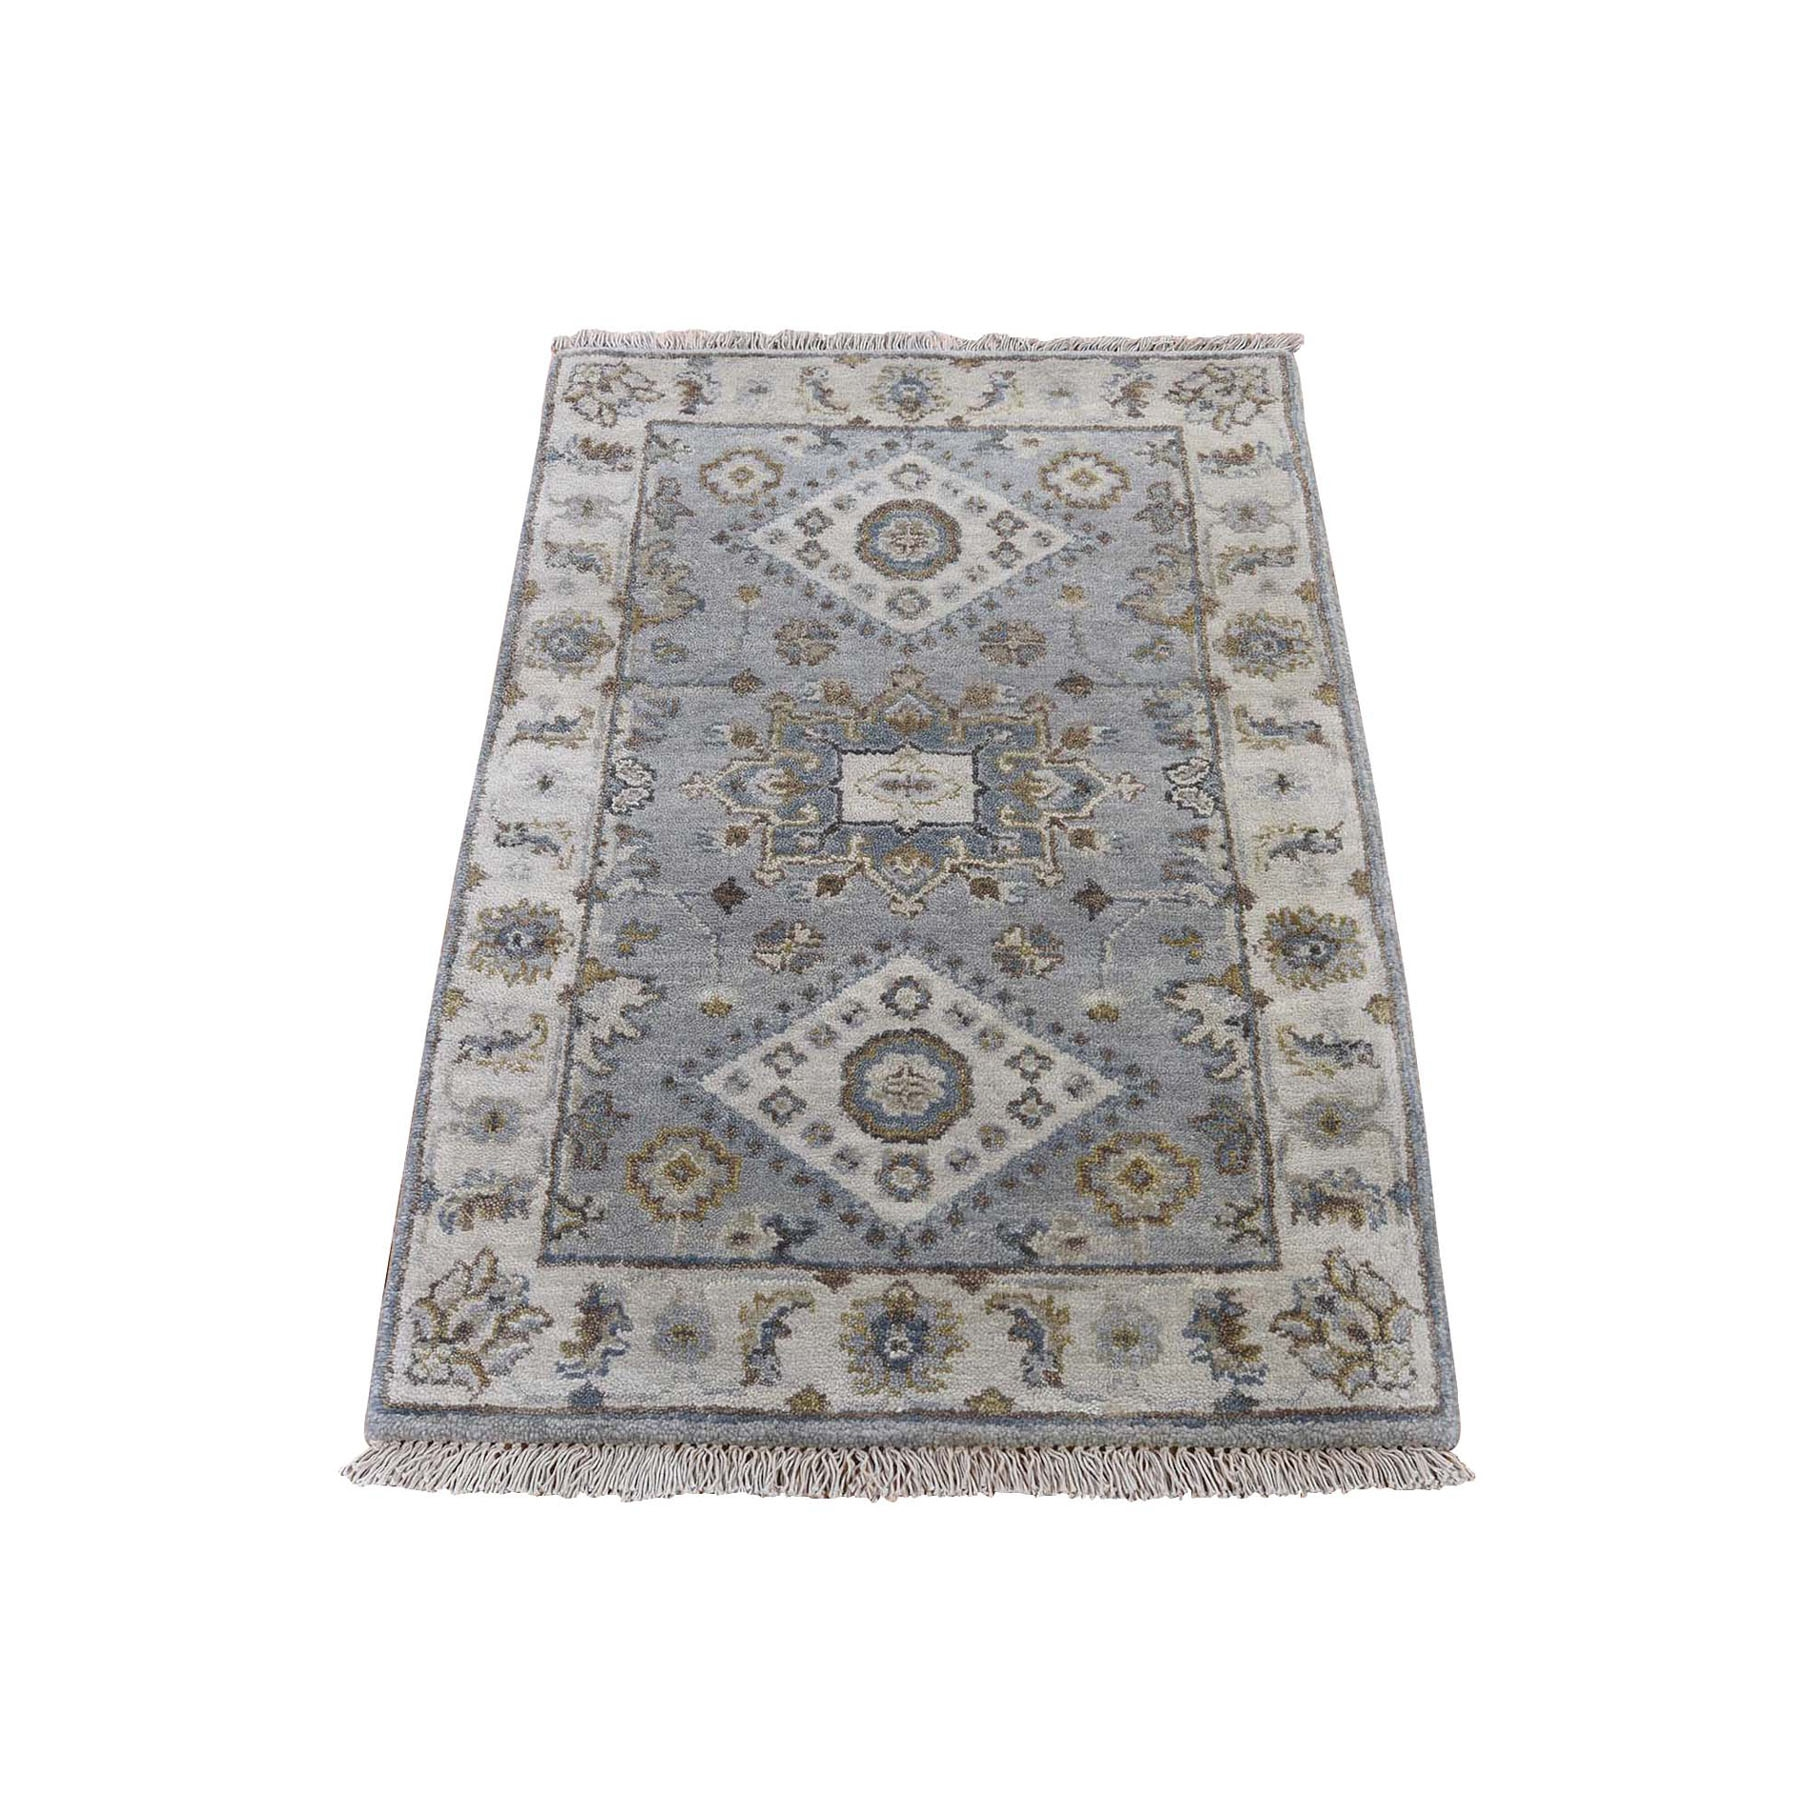 2'X3' Gray Karajeh Design Pure Wool Hand Knotted Oriental Rug moad9006